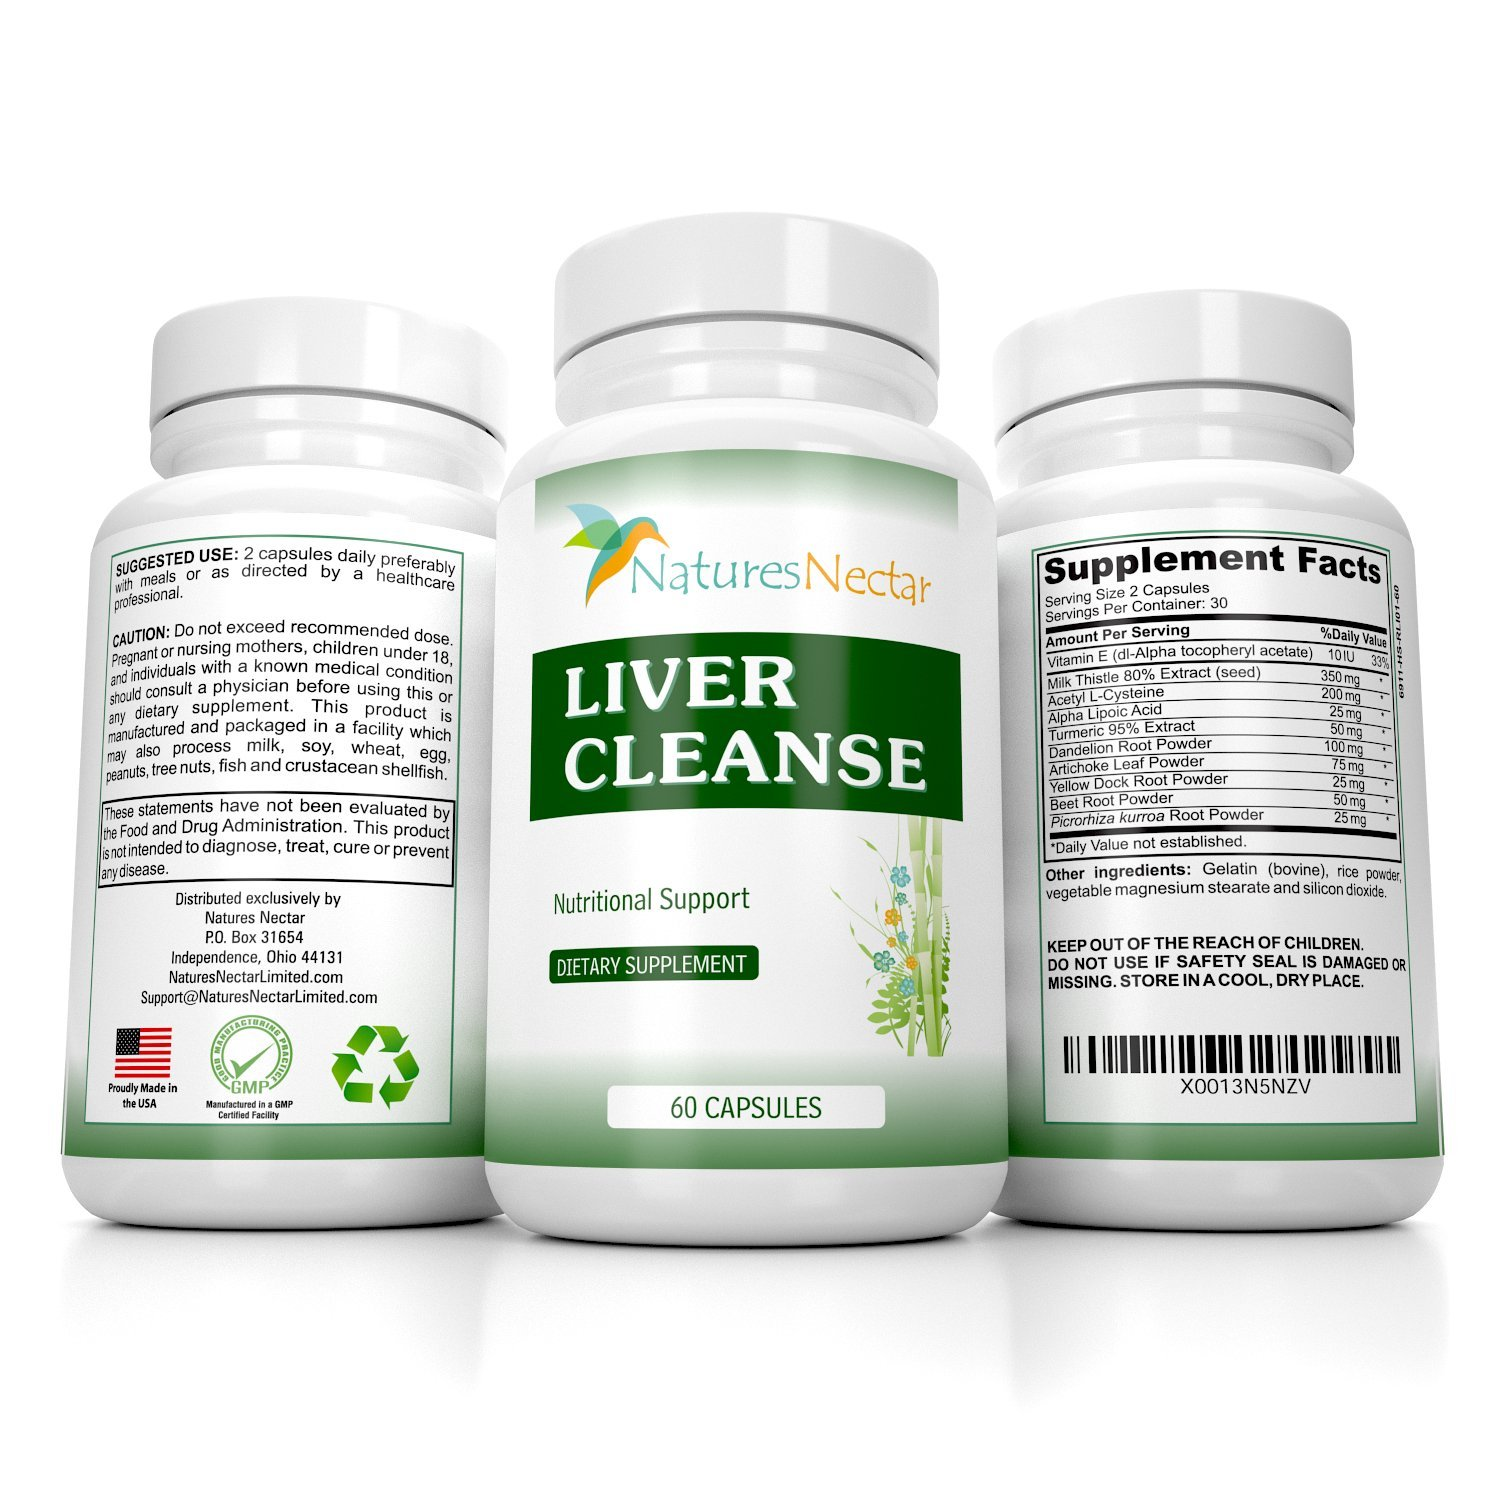 Liver Support Supplements - Cleanse and Detox Formula For Fatty Liver and Active Liver Also Liver Detox - Rescue - Aid Health and Repair - Liver Care Pill with Herbs Milk Thistle Dandelion Lipoic Acid